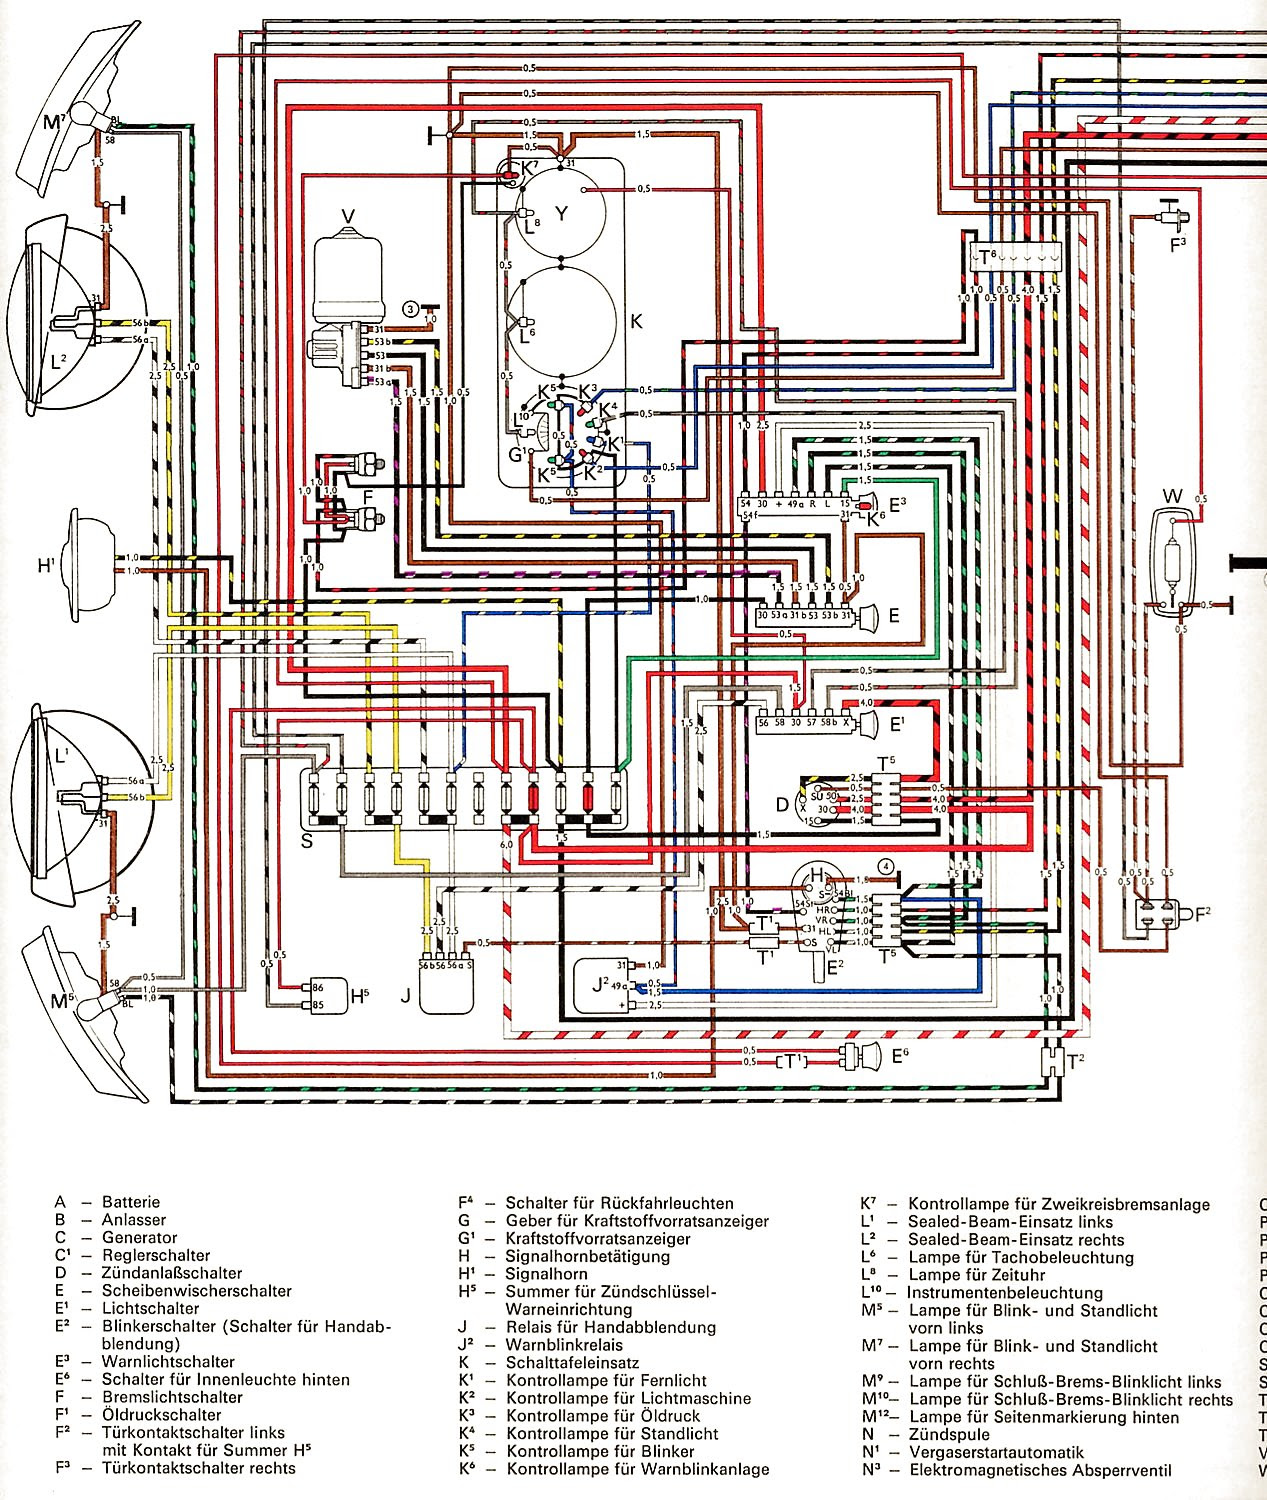 1971 Vw Bug Ignition Wiring 06 Ford Taurus Fuse Box Diagram For Wiring Diagram Schematics